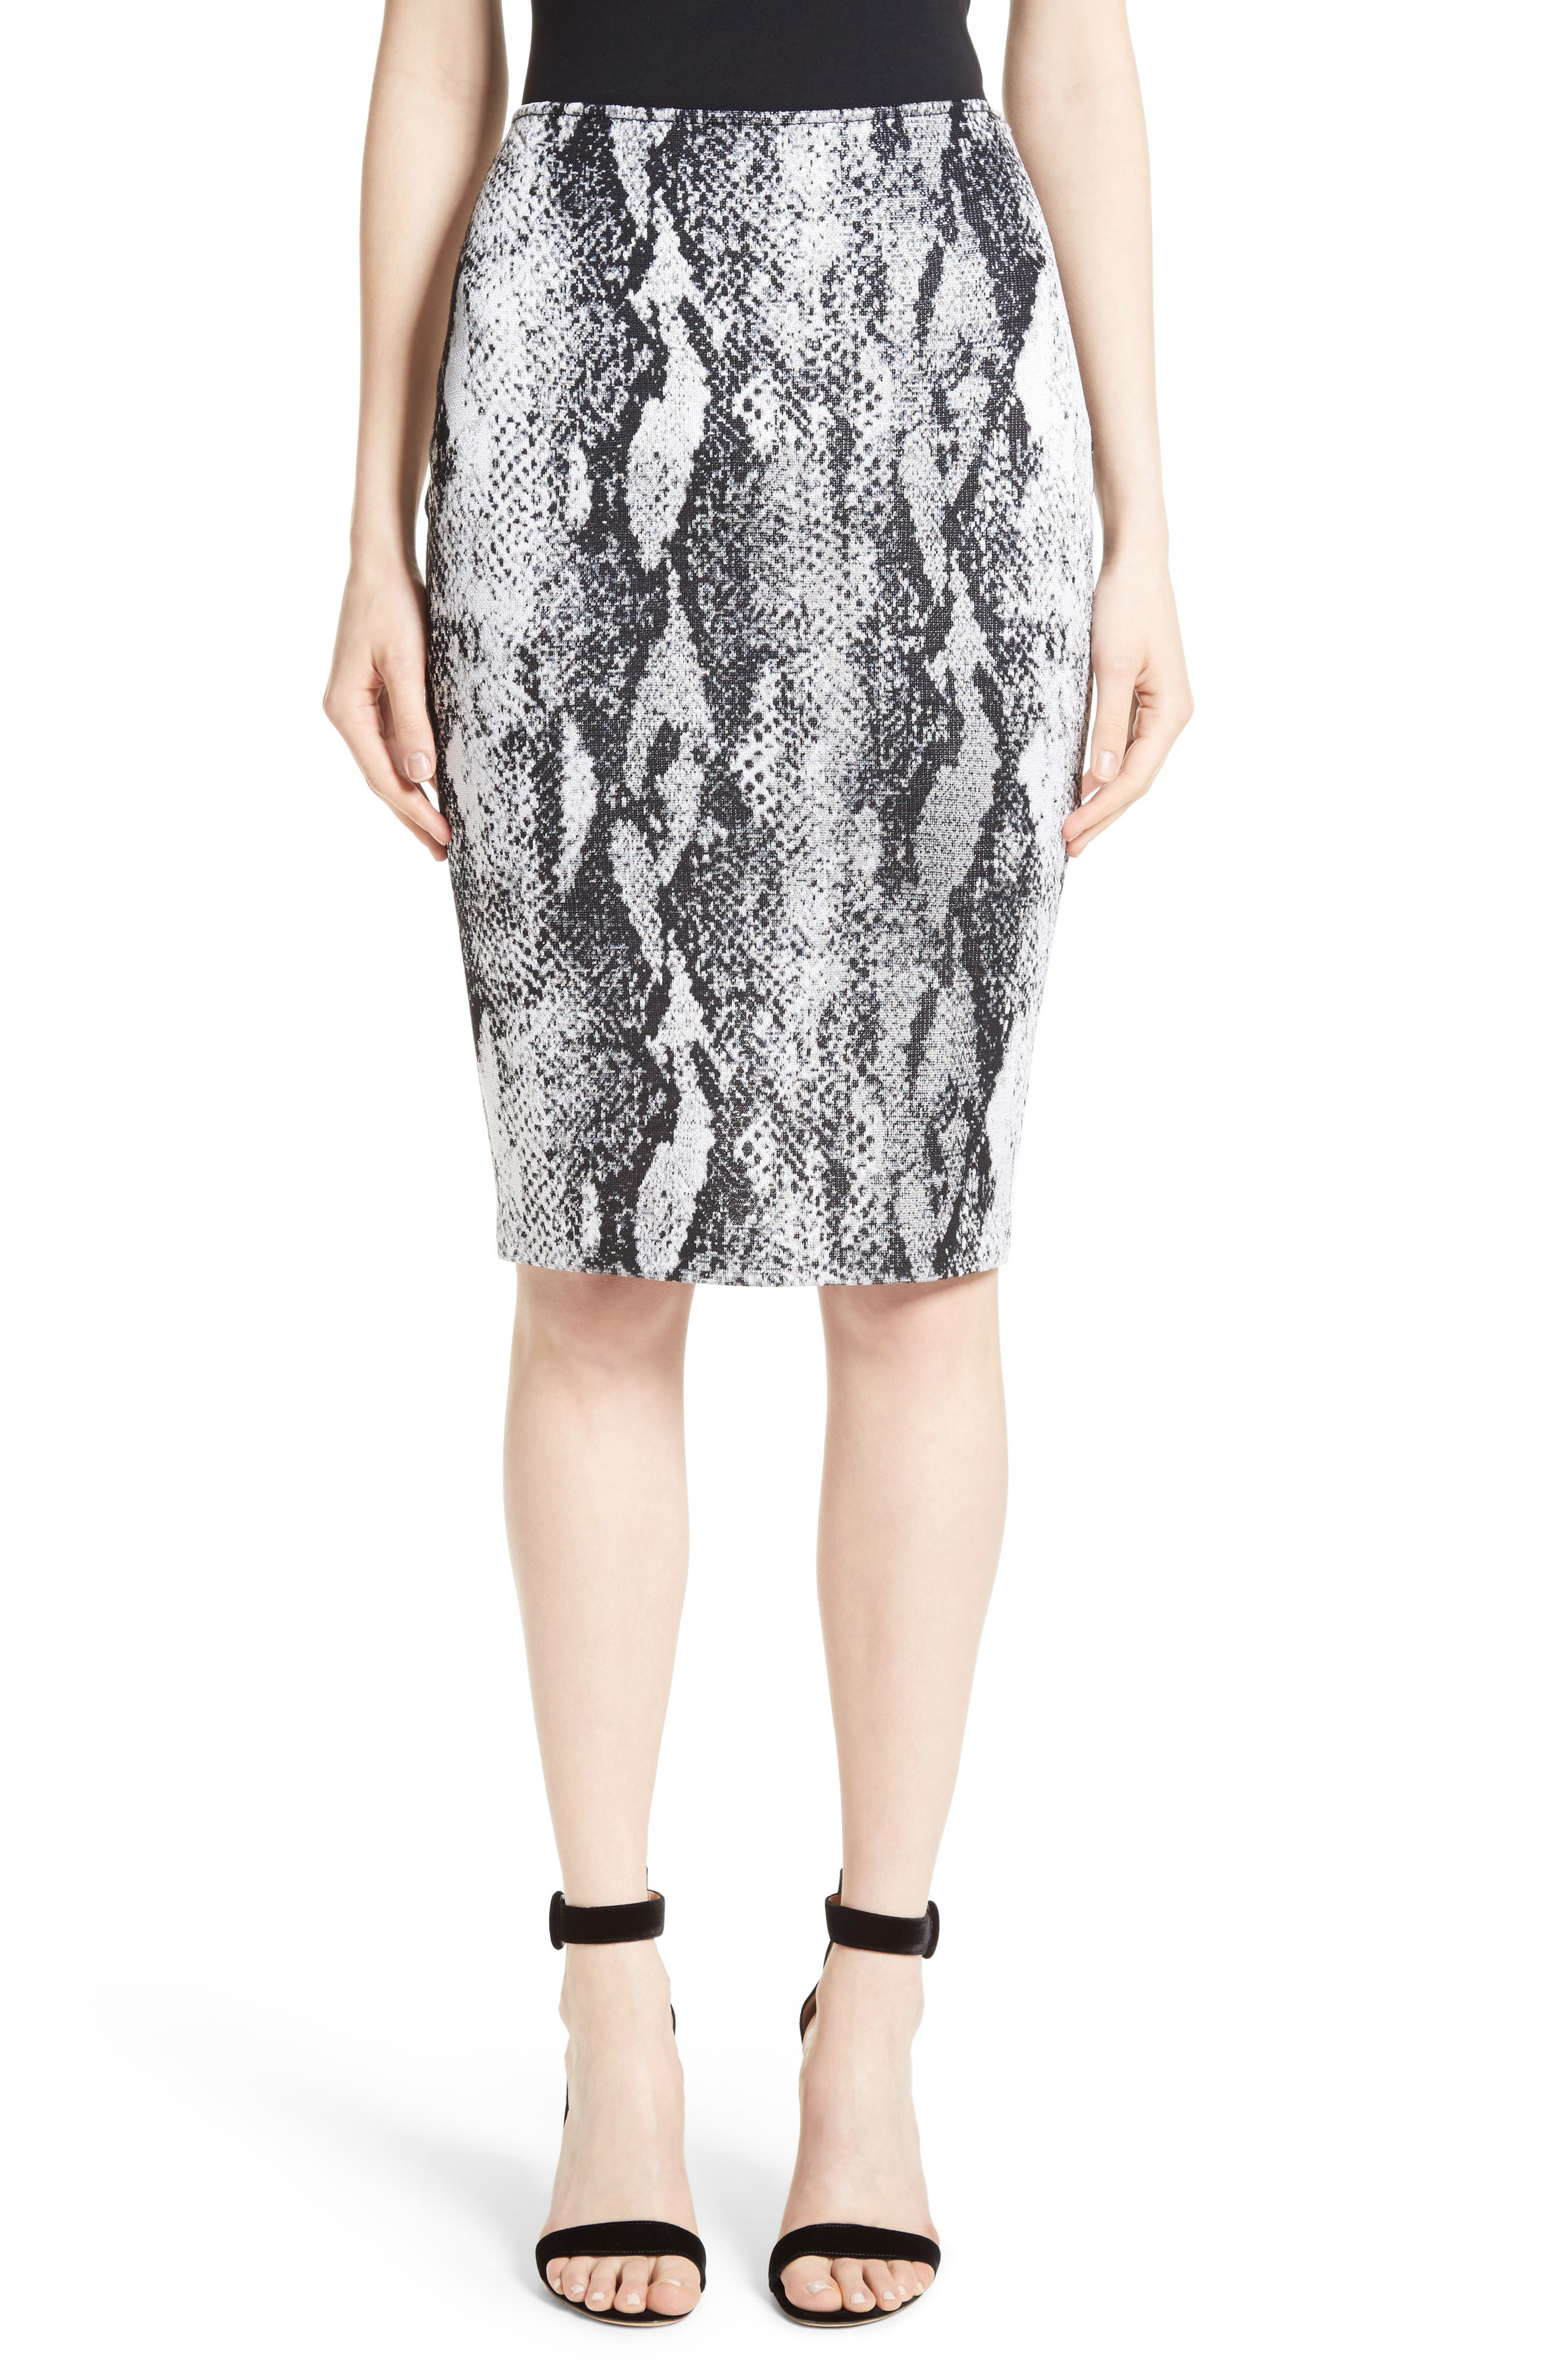 Raja Snakeskin Knit Pencil Skirt,                             Main thumbnail 1, color,                             050